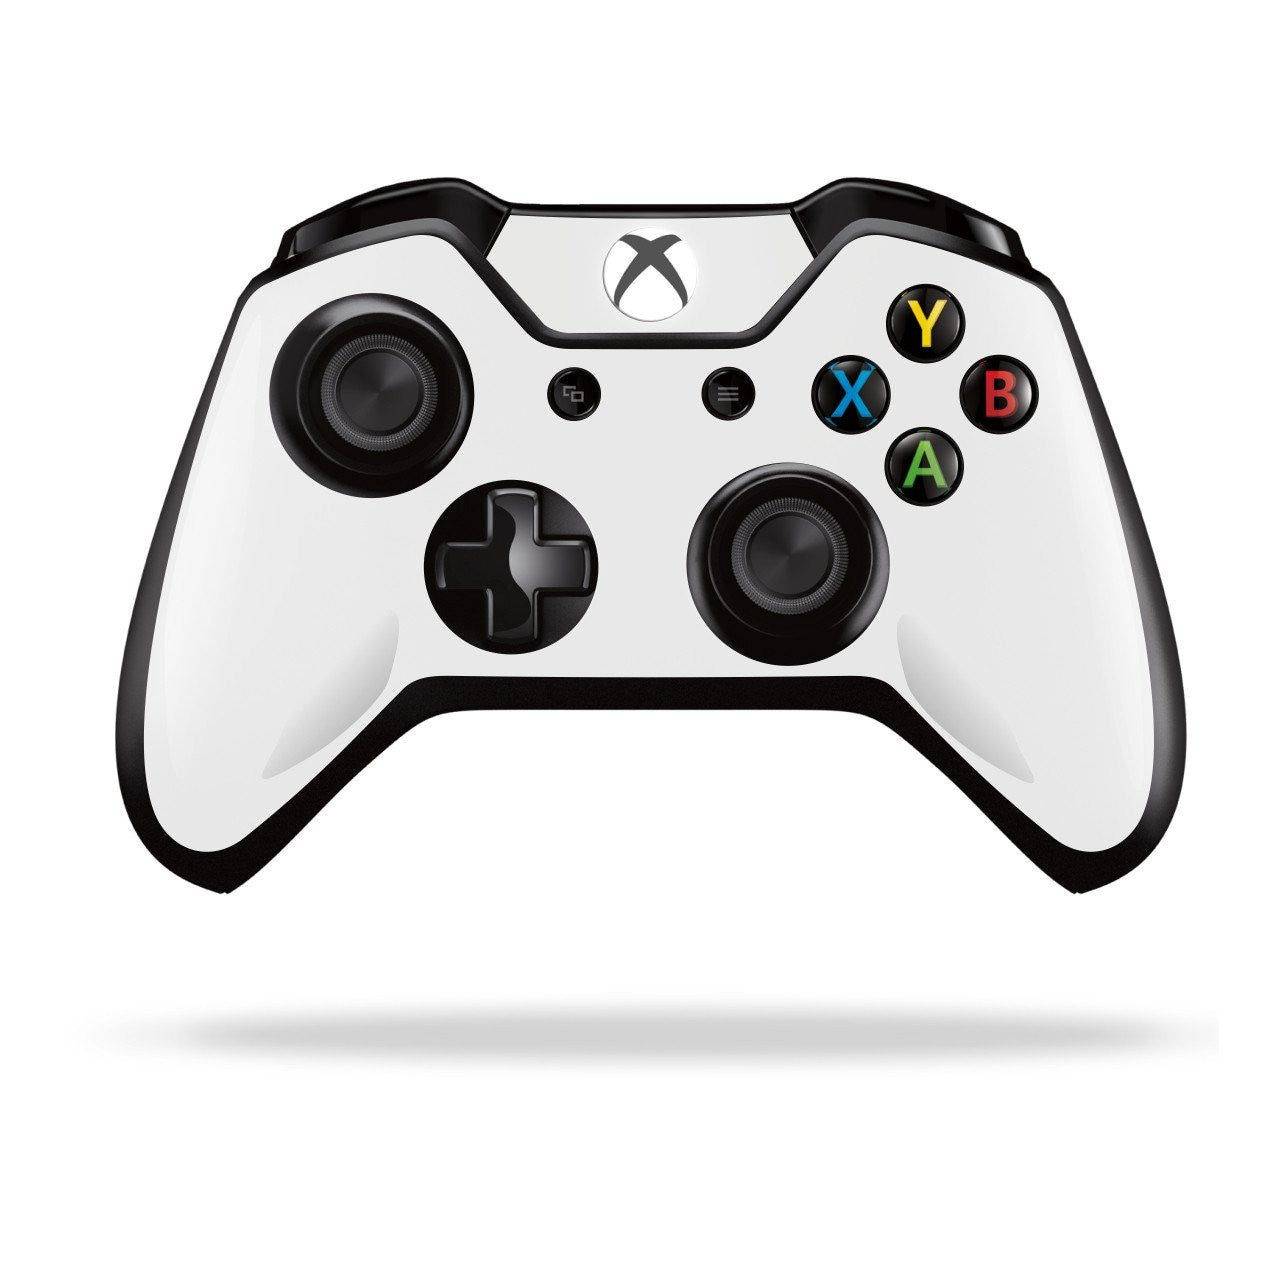 Xbox One Controller White MATT Matte Skin Wrap Sticker Decal Protector Cover by EasySkinz